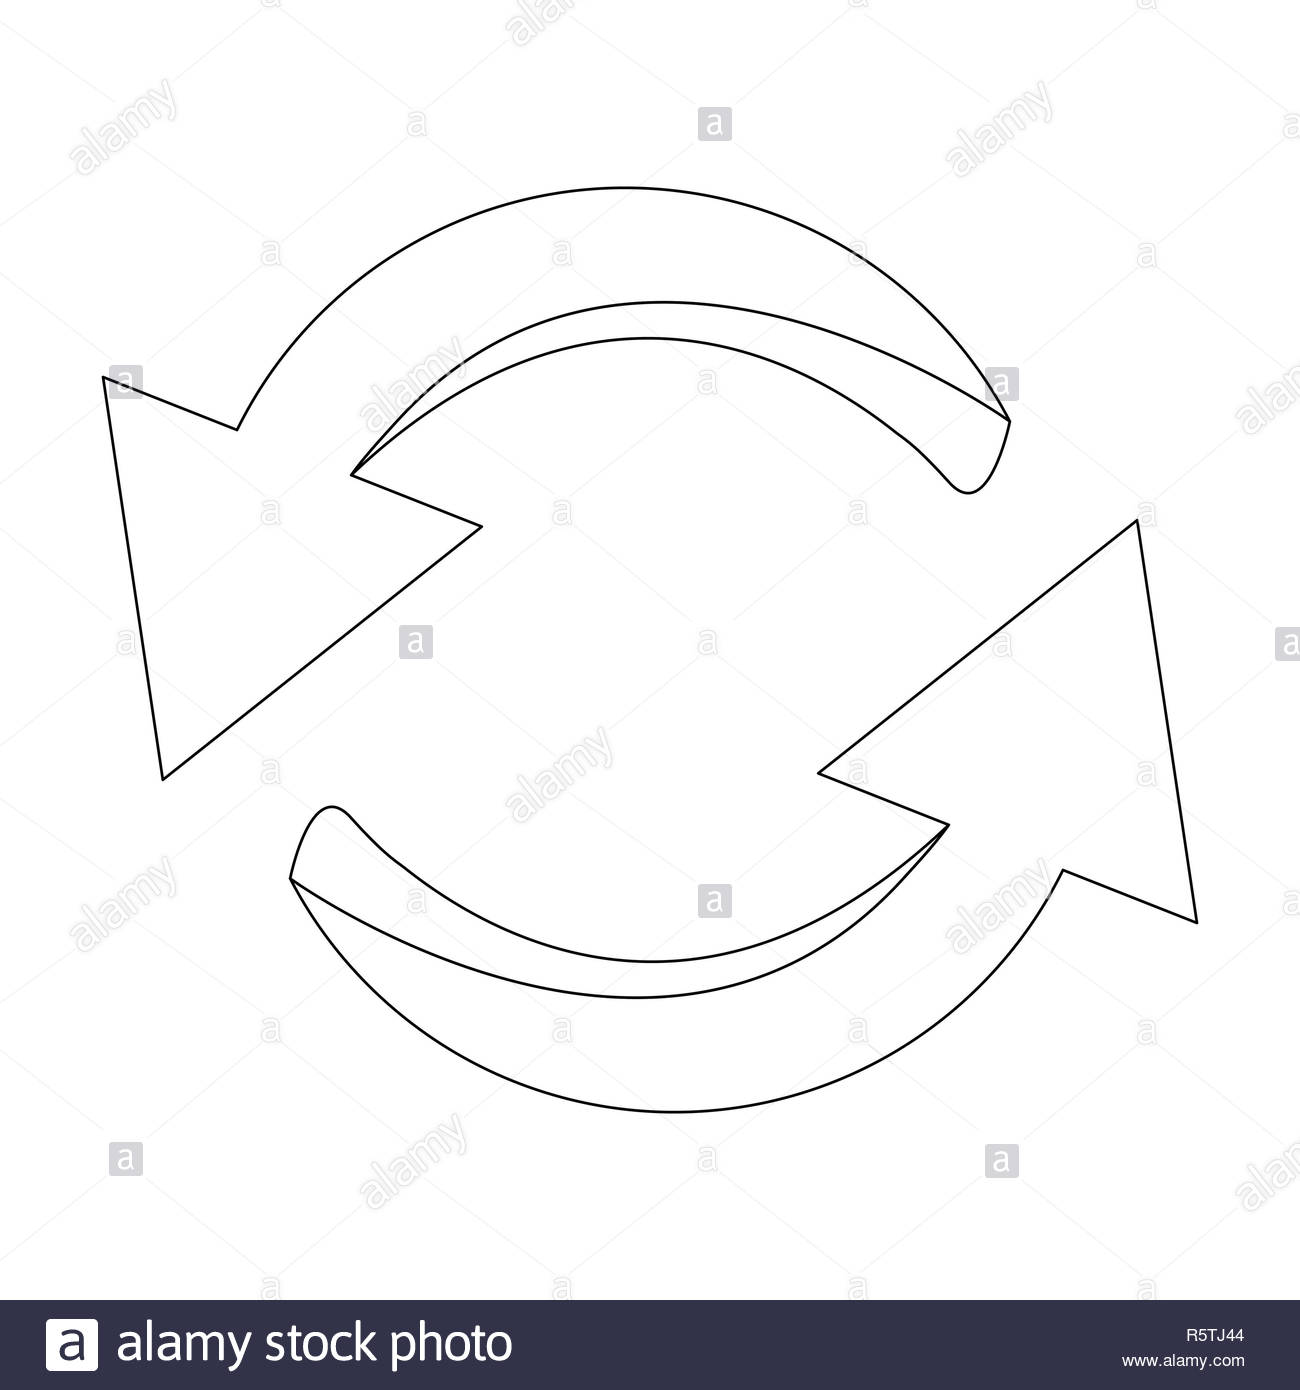 Arrow symbol, outline icon clipart cycle business concept. Vector.